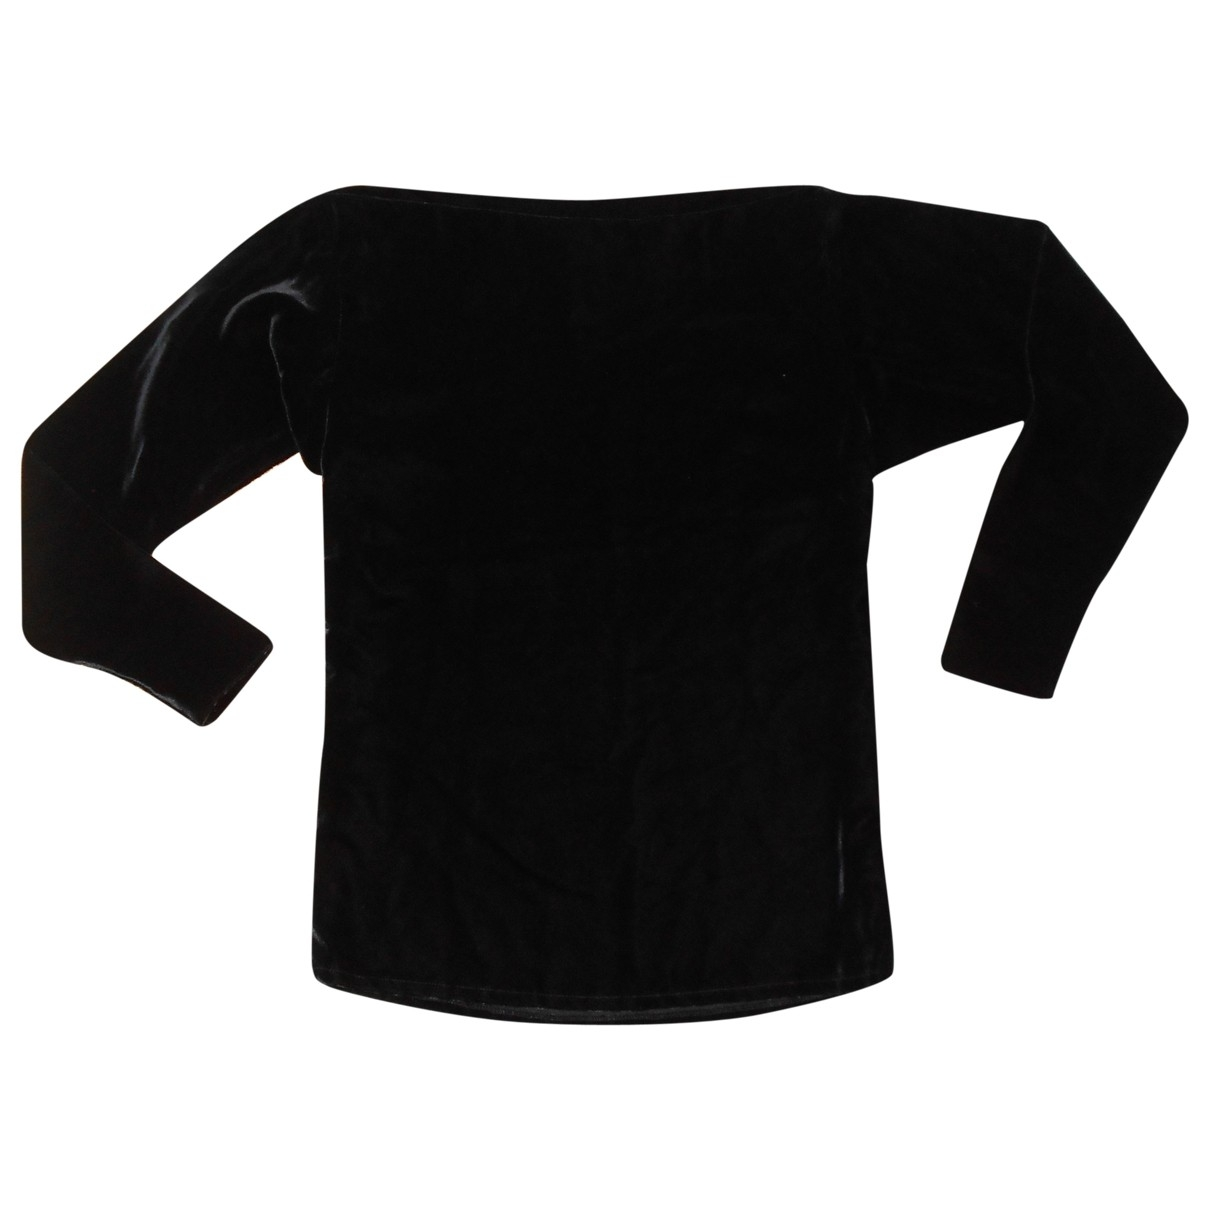 Yves Saint Laurent \N Black  top for Women 38 FR